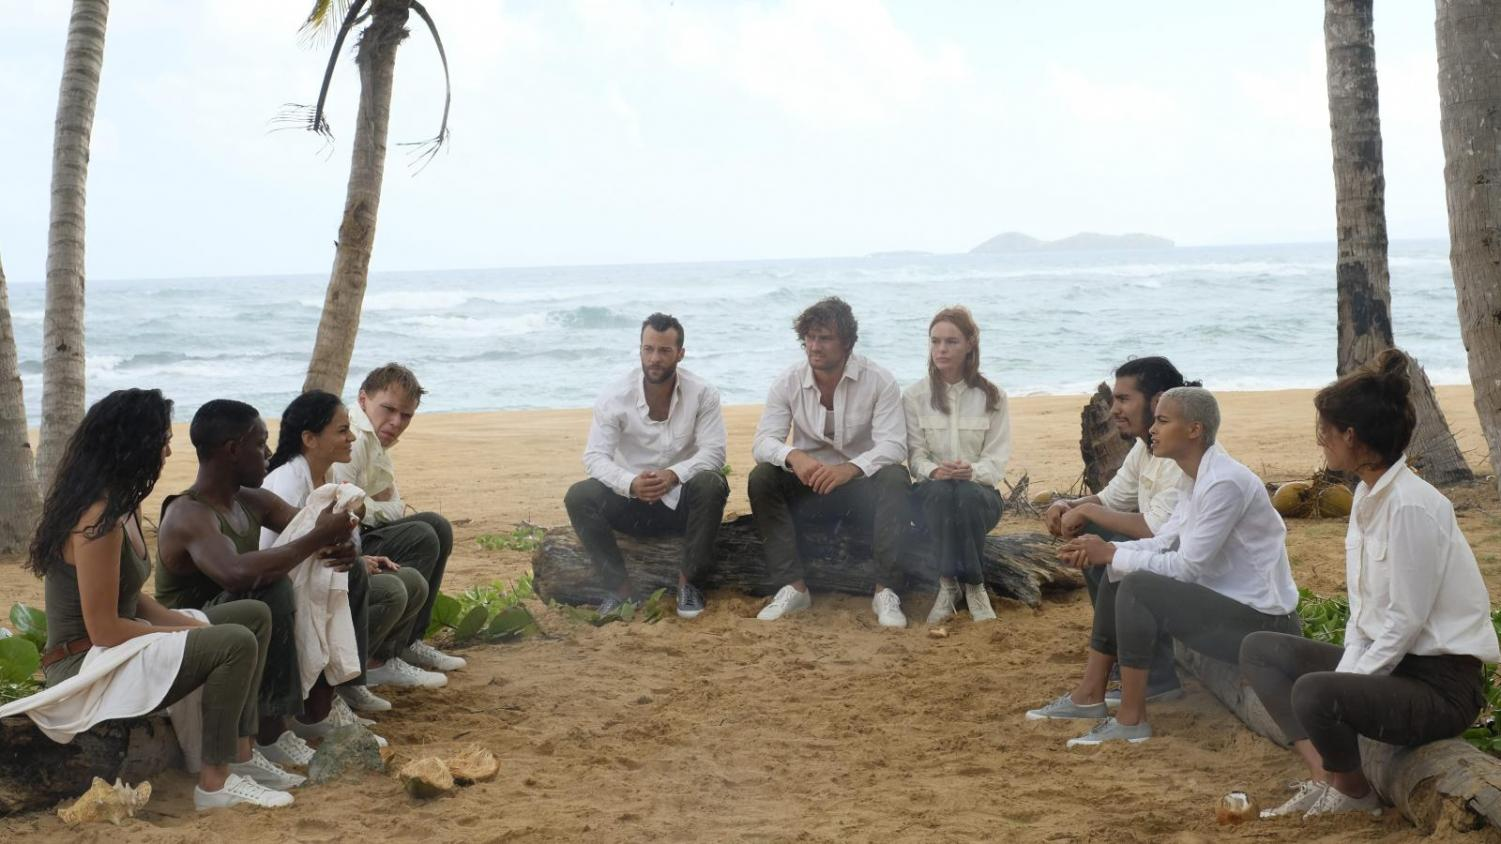 This picture shows the 10 islanders talking about what hey need to do to survive. This happens immediately after they wake up not having any memory or knowing anything about themselves. This scene pulls the viewer in and makes them want to know what is going on, so they keep watching.